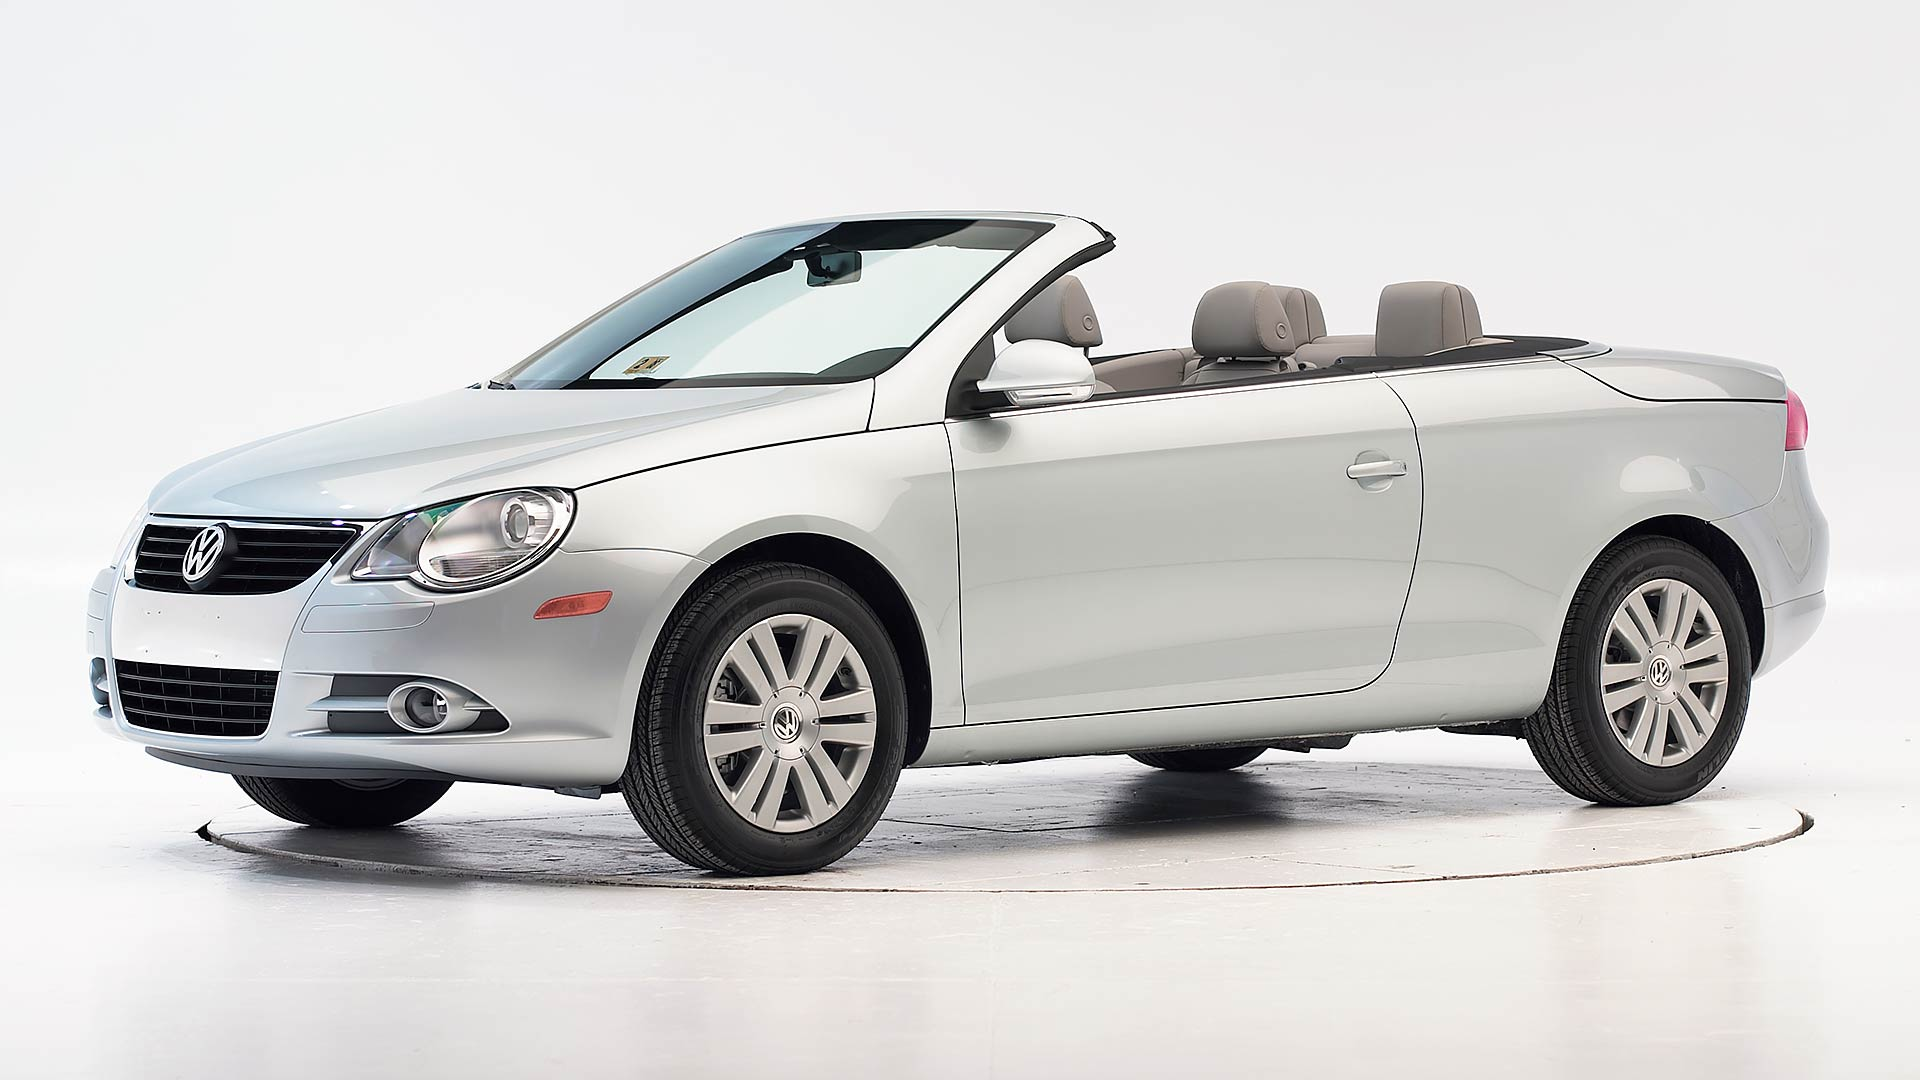 2008 Volkswagen Eos 2-door convertible